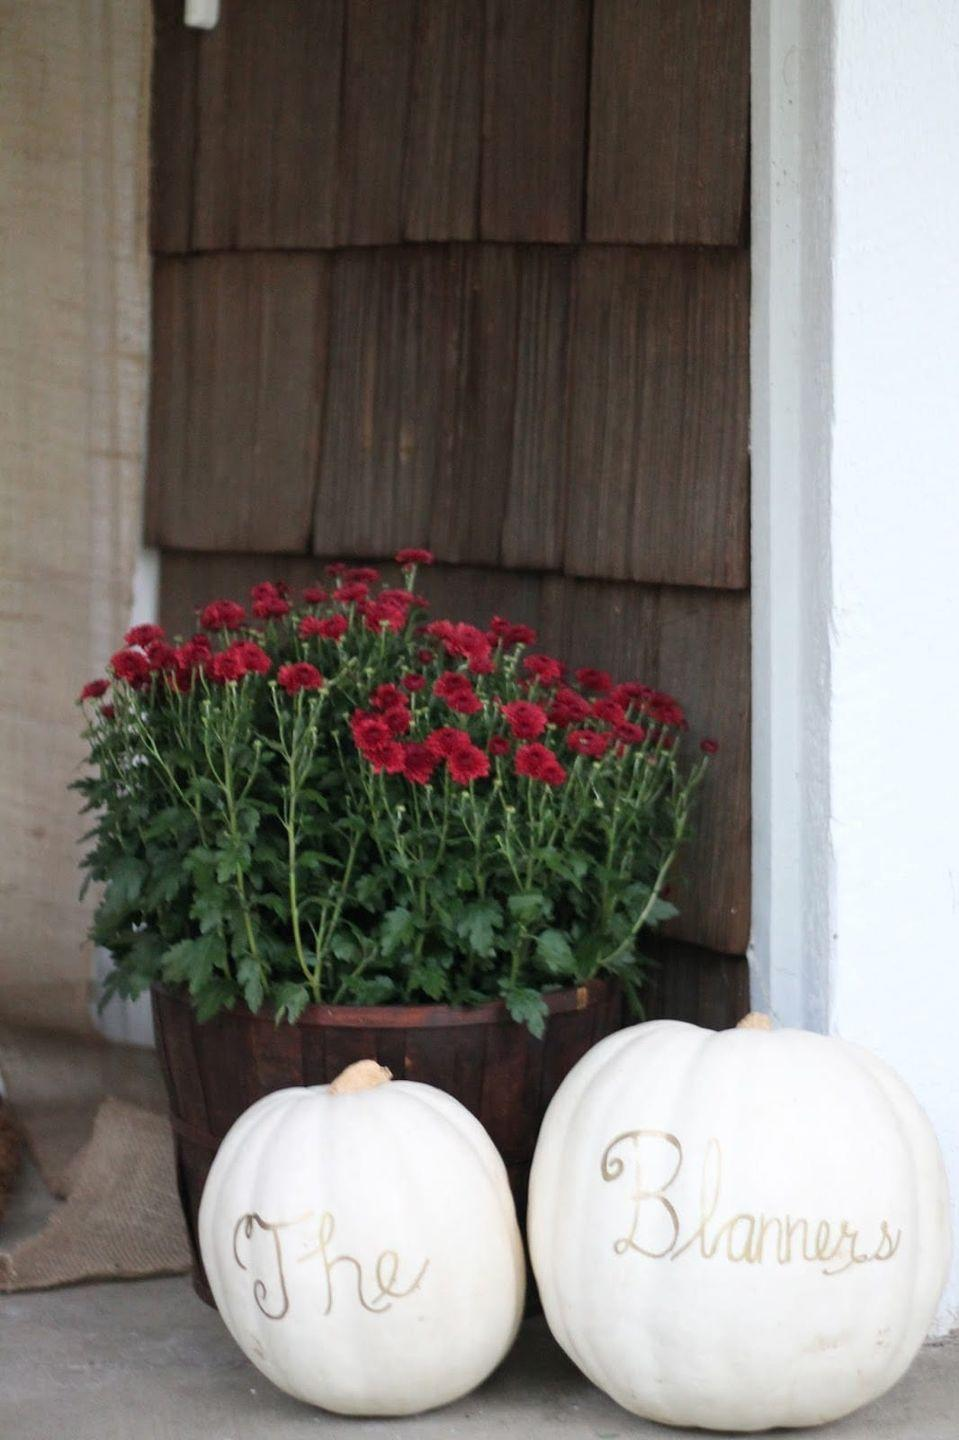 """<p>Personalize a pair of pumpkins with your name, house number, or a simple welcome message. Paint, stencils, or freehand penmanship all work well here.</p><p><strong>Get the tutorial at <a href=""""https://julieblanner.com/fall-porch-decor/"""" rel=""""nofollow noopener"""" target=""""_blank"""" data-ylk=""""slk:Julie Blanner"""" class=""""link rapid-noclick-resp"""">Julie Blanner</a>.</strong></p><p><strong><strong><strong><strong><strong><strong><strong><strong><a class=""""link rapid-noclick-resp"""" href=""""https://go.redirectingat.com?id=74968X1596630&url=https%3A%2F%2Fwww.walmart.com%2Fsearch%2F%3Fquery%3Dfaux%2Bpumpkins&sref=https%3A%2F%2Fwww.thepioneerwoman.com%2Fhome-lifestyle%2Fdecorating-ideas%2Fg36664123%2Fwhite-pumpkin-decor-ideas%2F"""" rel=""""nofollow noopener"""" target=""""_blank"""" data-ylk=""""slk:SHOP FAUX PUMPKINS"""">SHOP FAUX PUMPKINS</a></strong></strong></strong></strong></strong></strong></strong><br></strong></p>"""